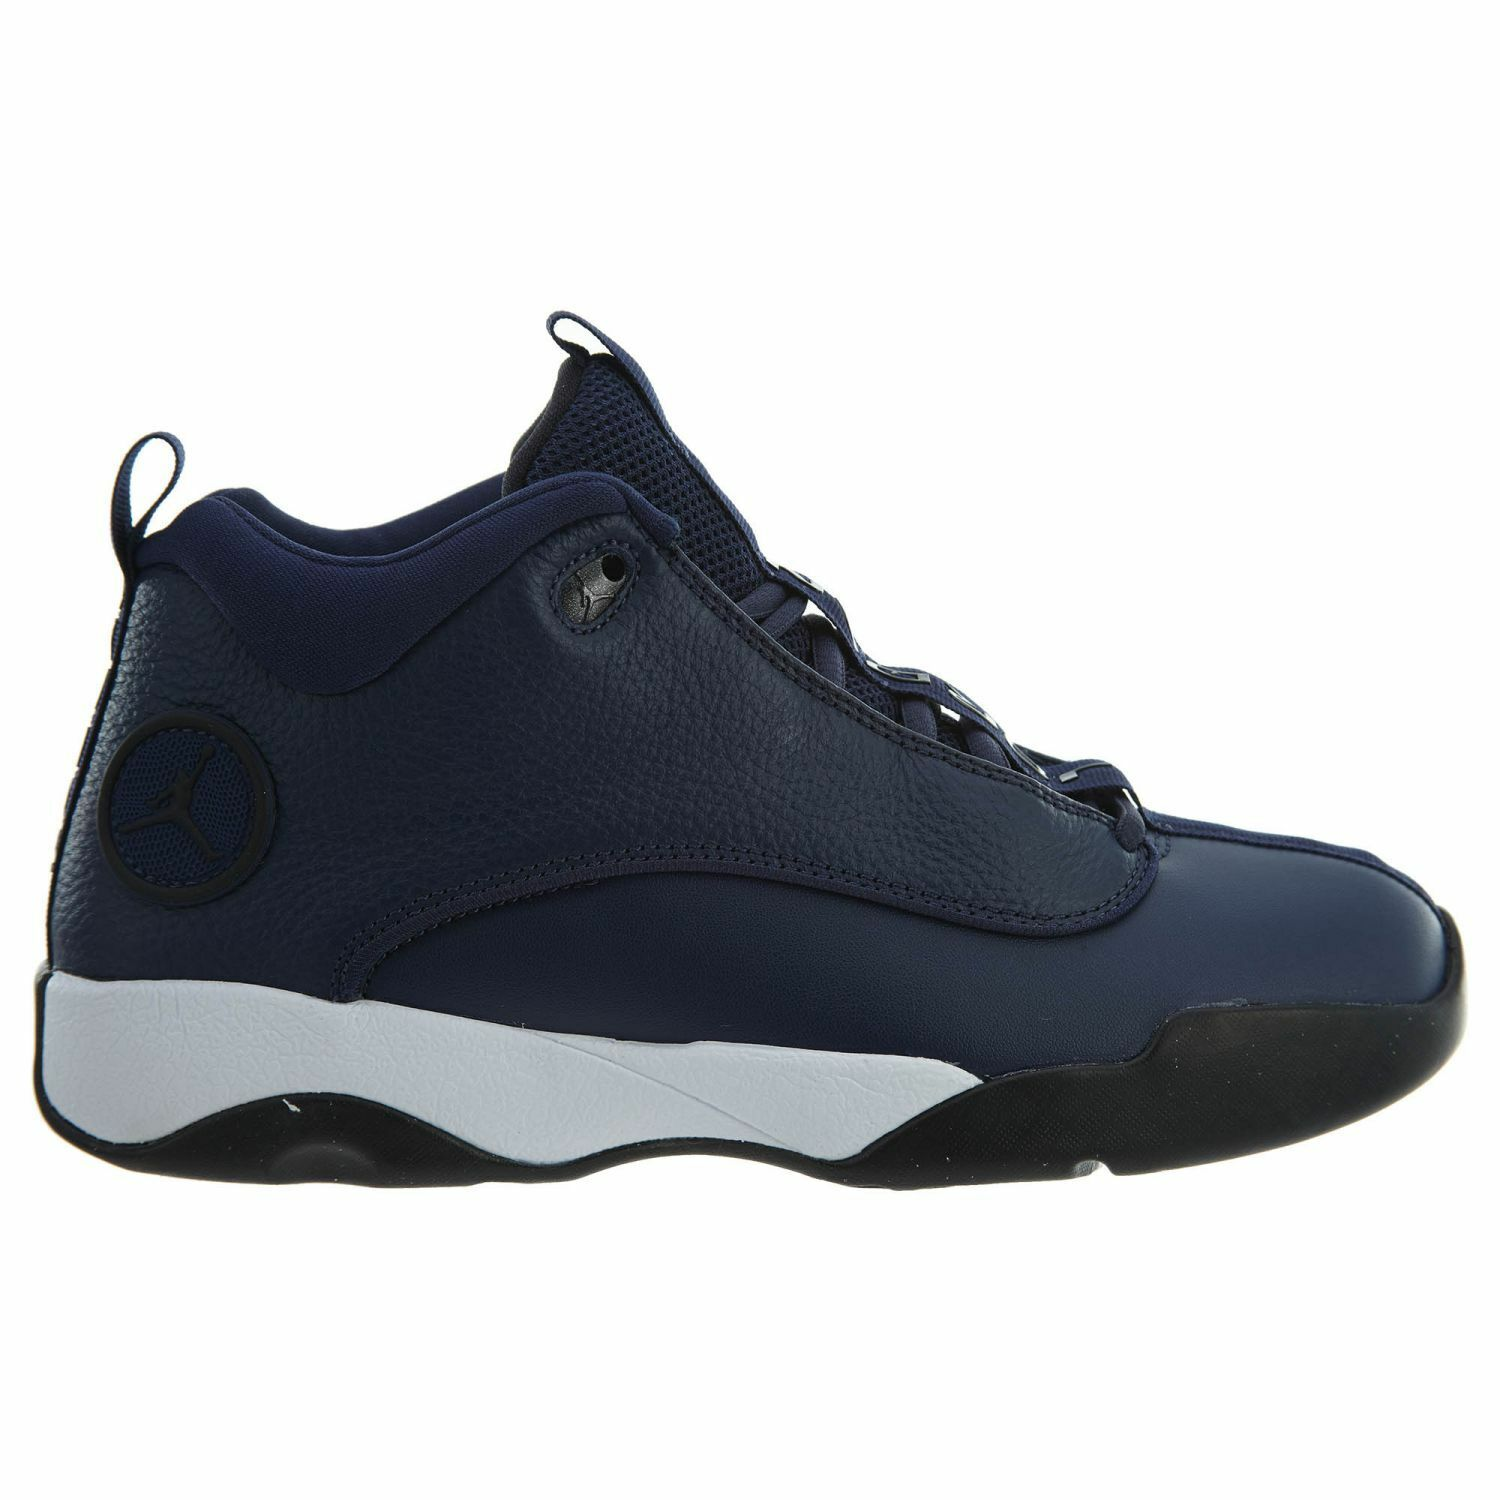 Jordan Jumpman Pro Quick Mens 932687-401 Navy Blue Basketball Shoes Comfortable The most popular shoes for men and women